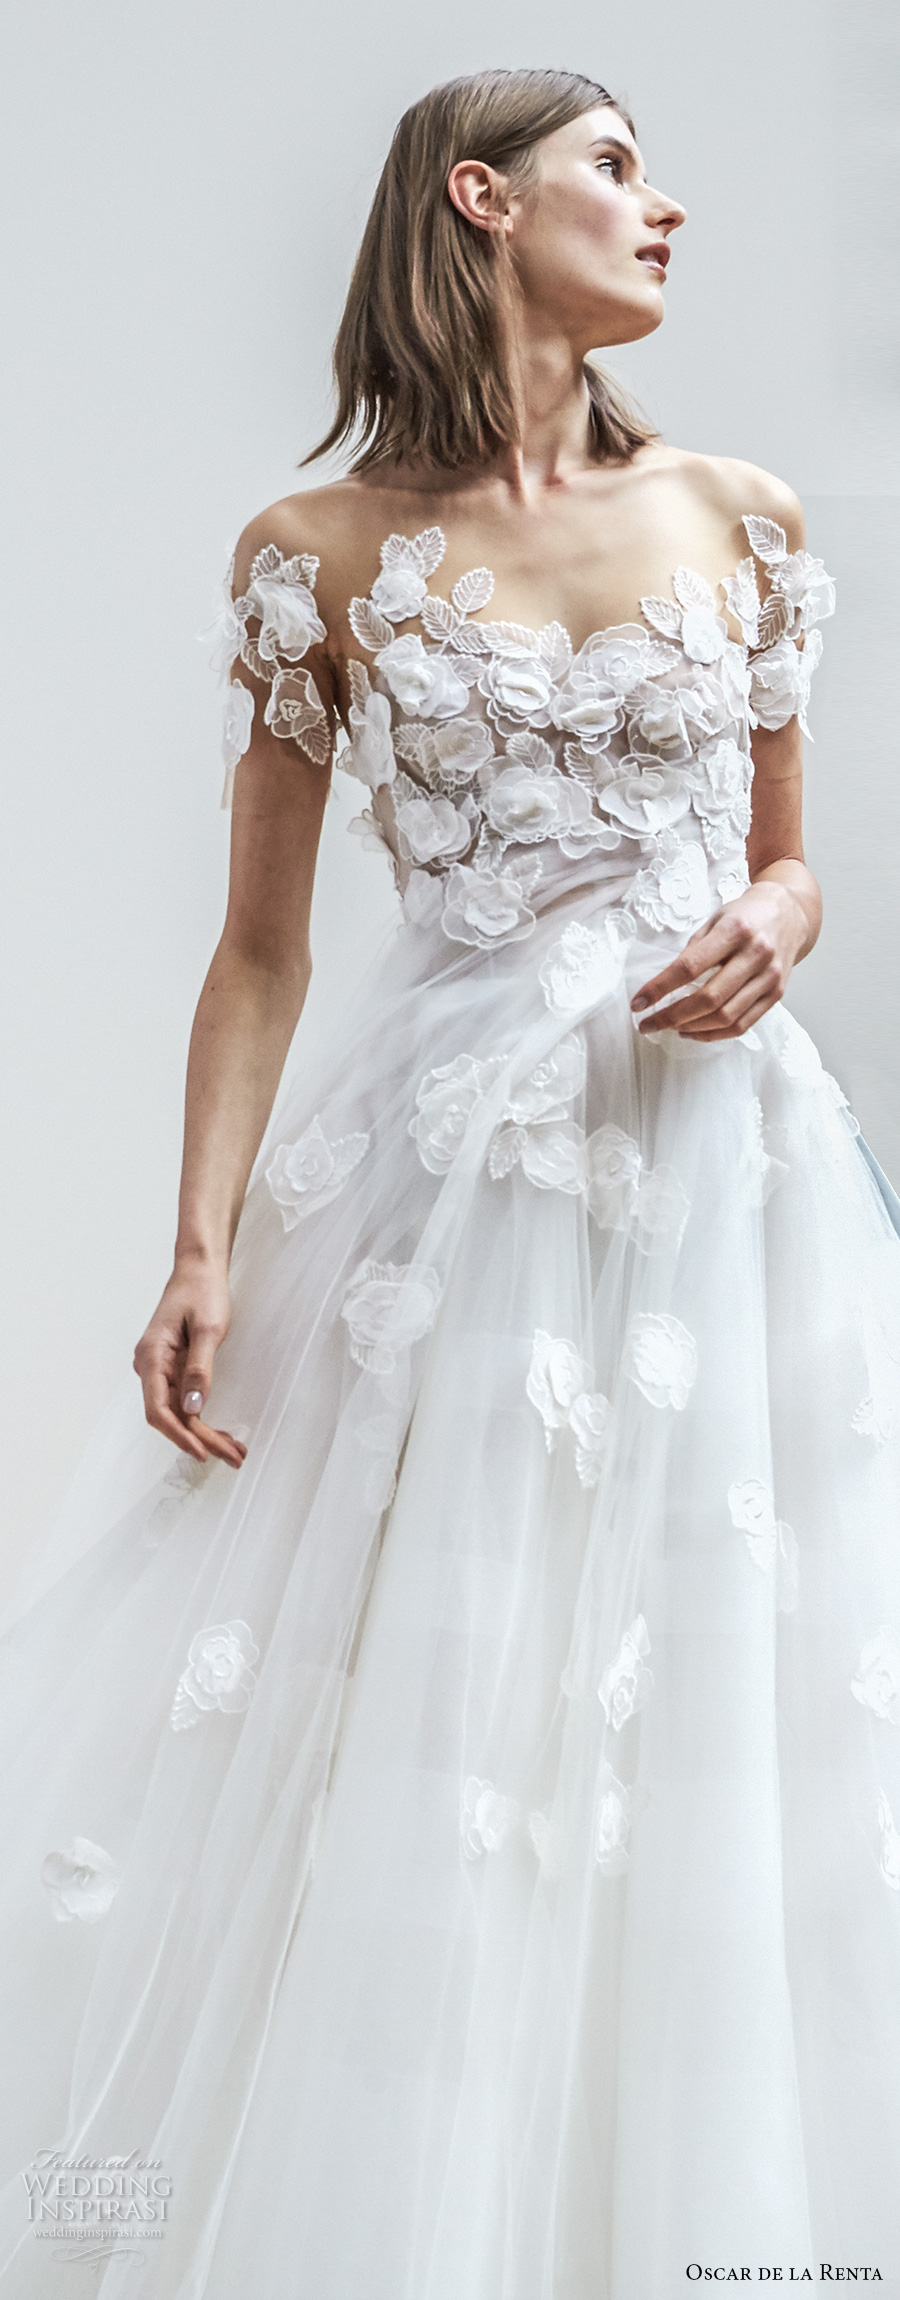 Oscar de la renta spring 2018 wedding dresses new york for Dresses for spring wedding